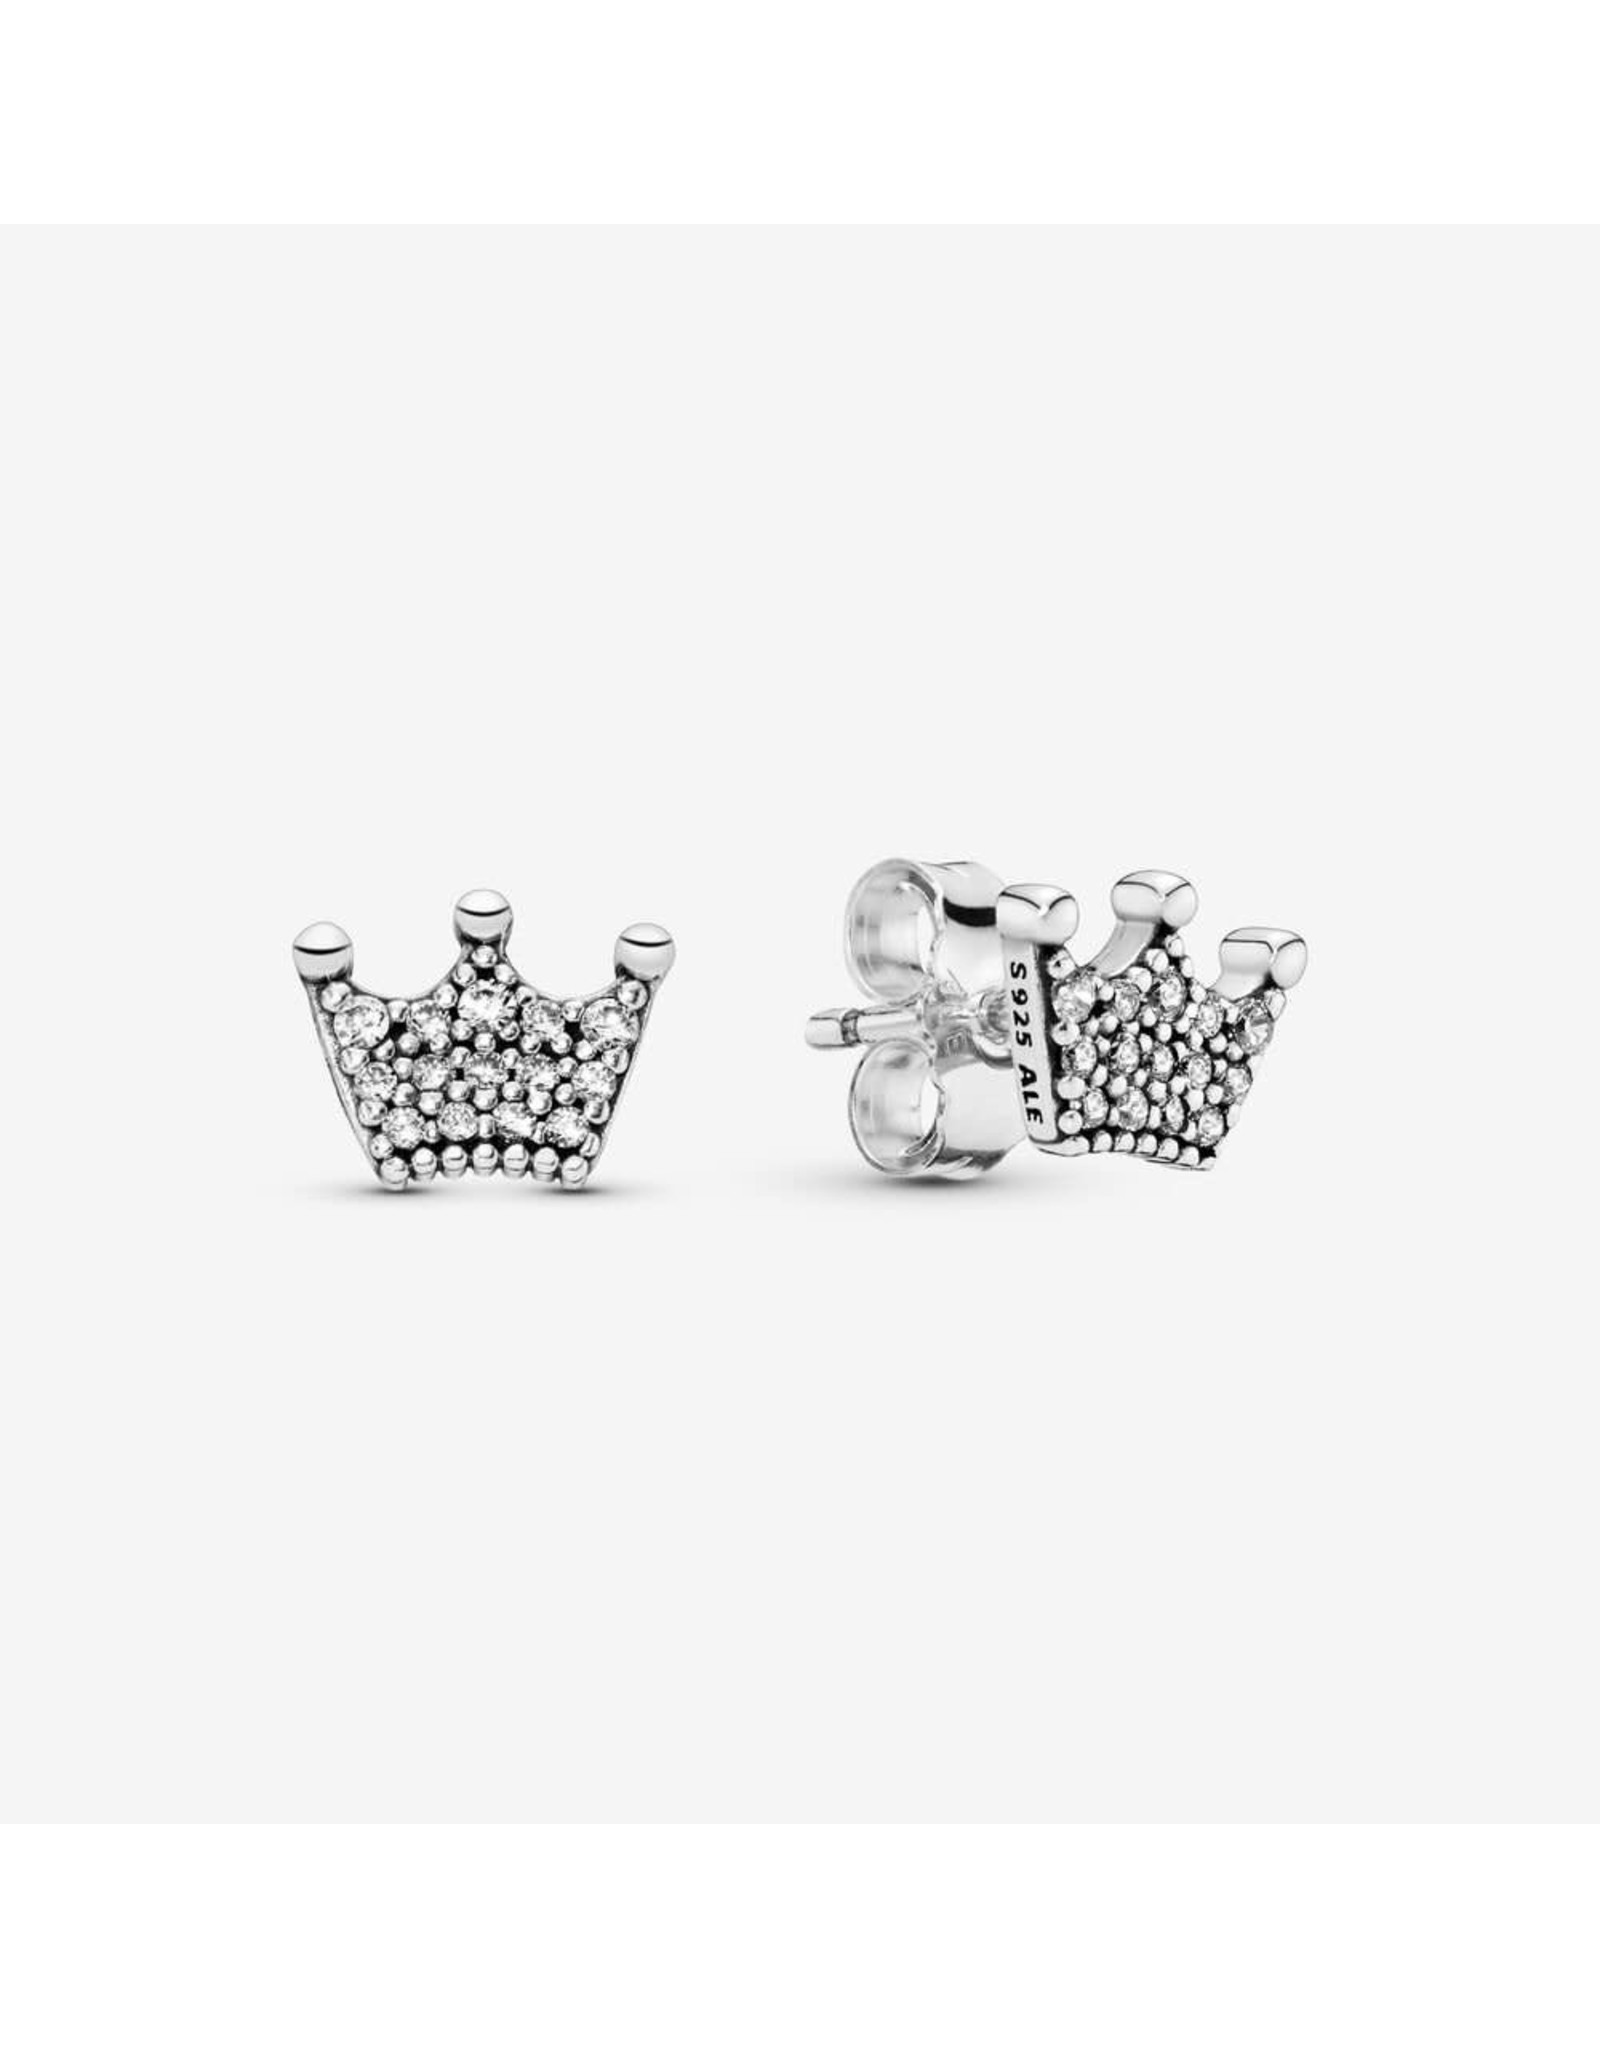 Pandora Pandora Crown Stud Earrings In Sterling Silver With 28 Bead-Set Clear CZ